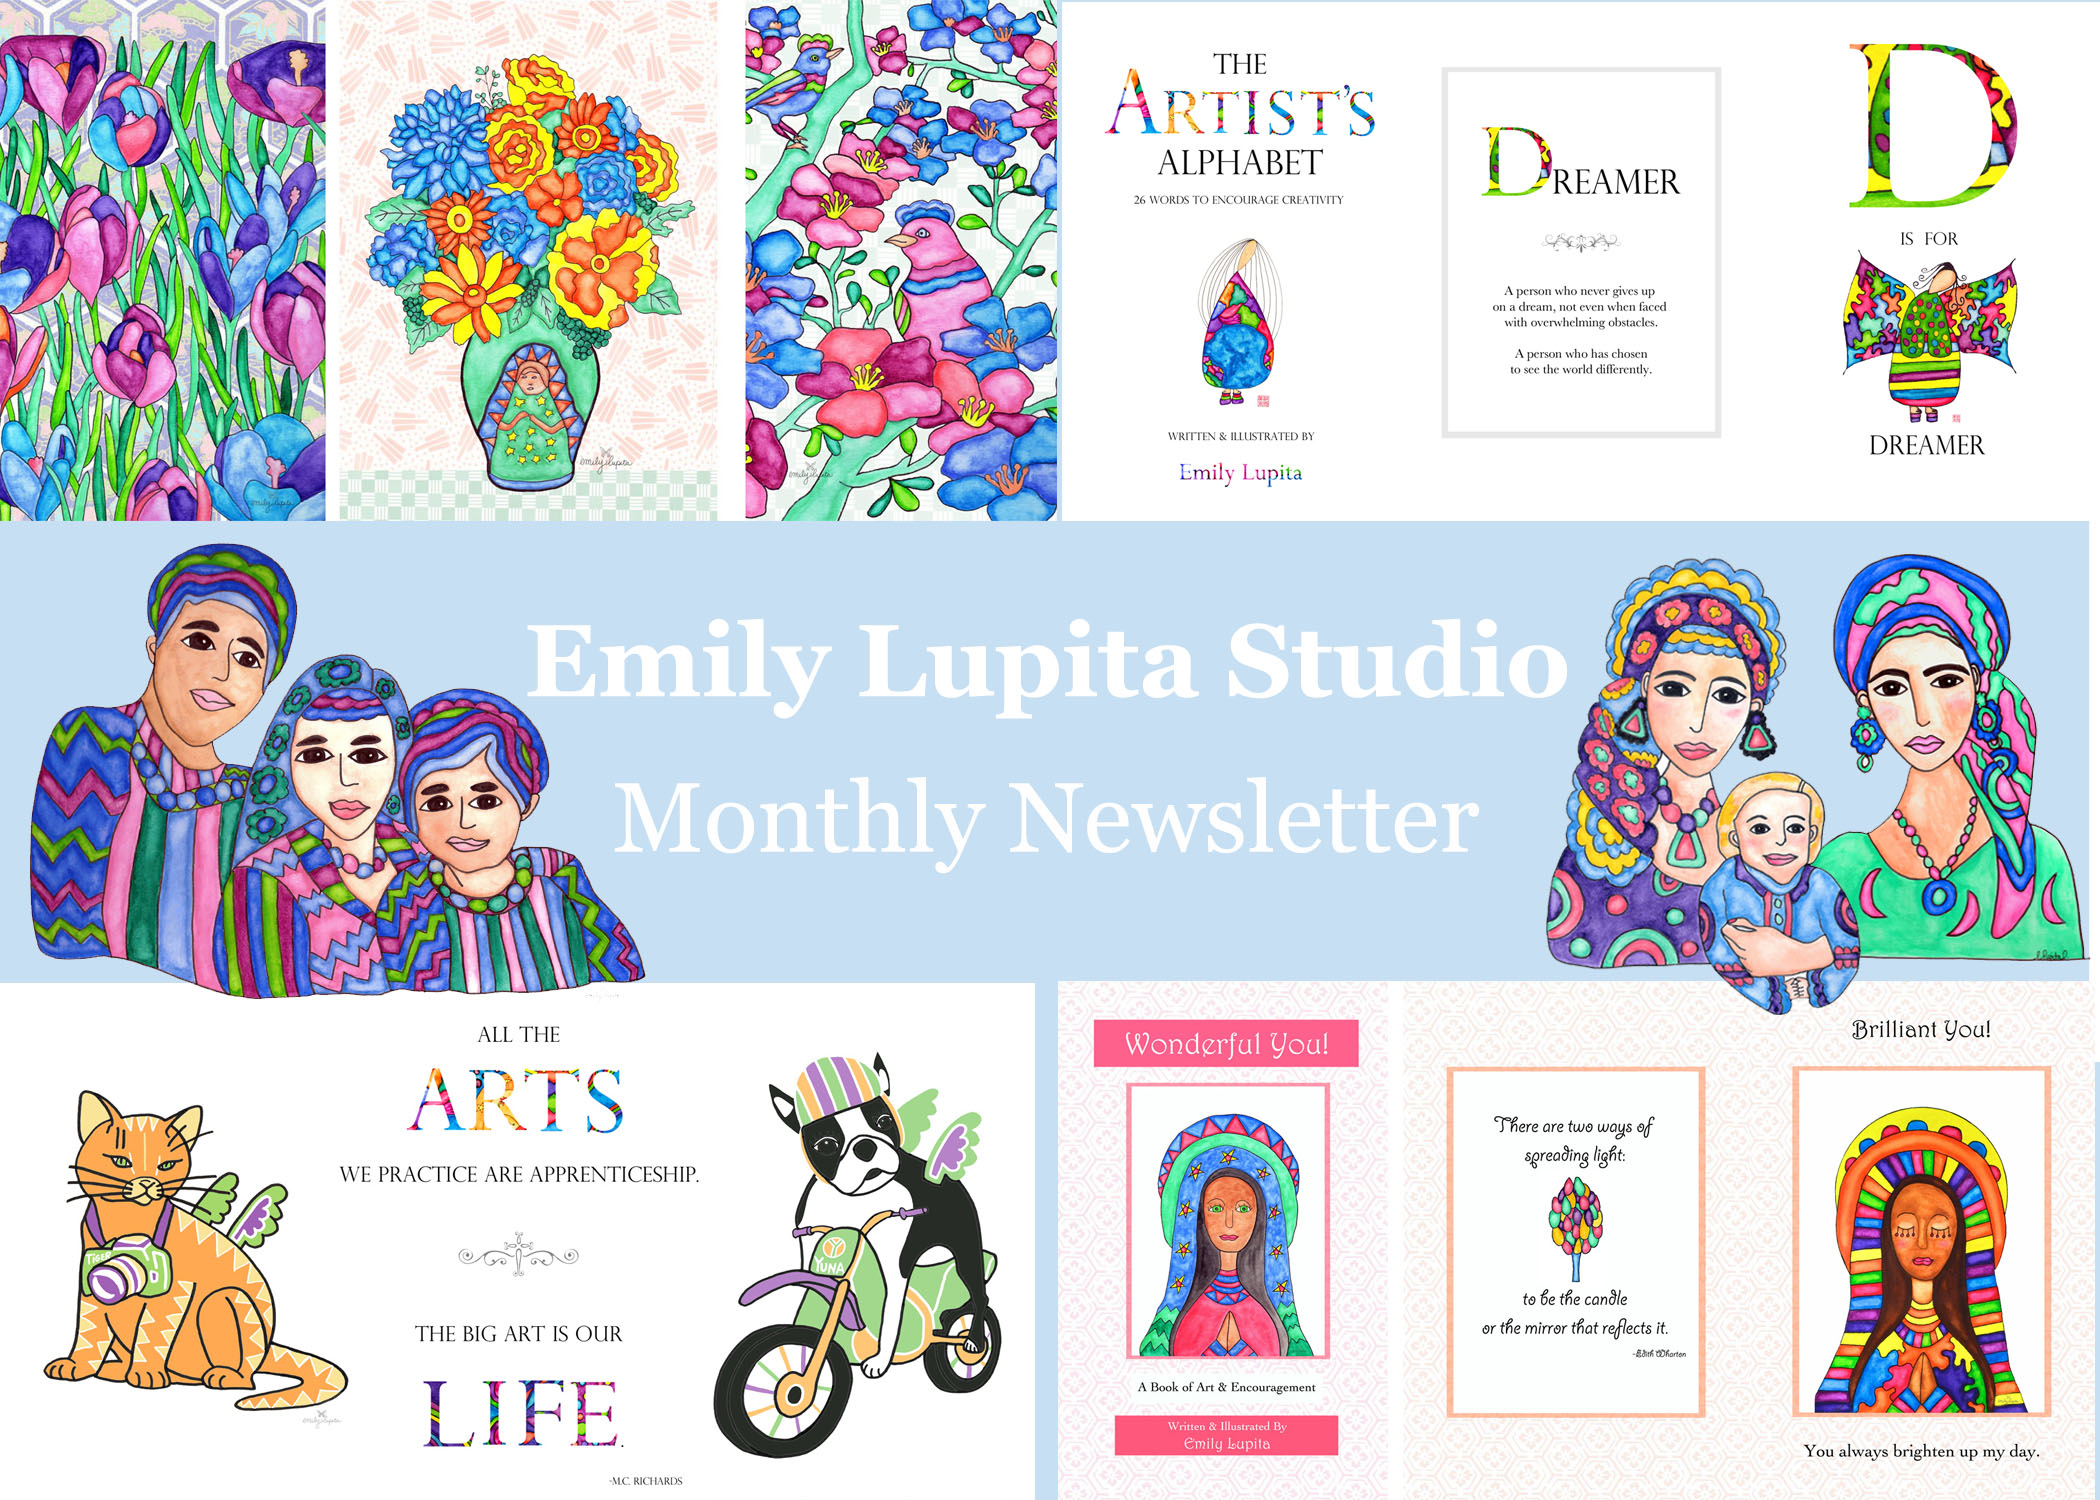 EmilyLupitaStudio_MonthlyNewsletter